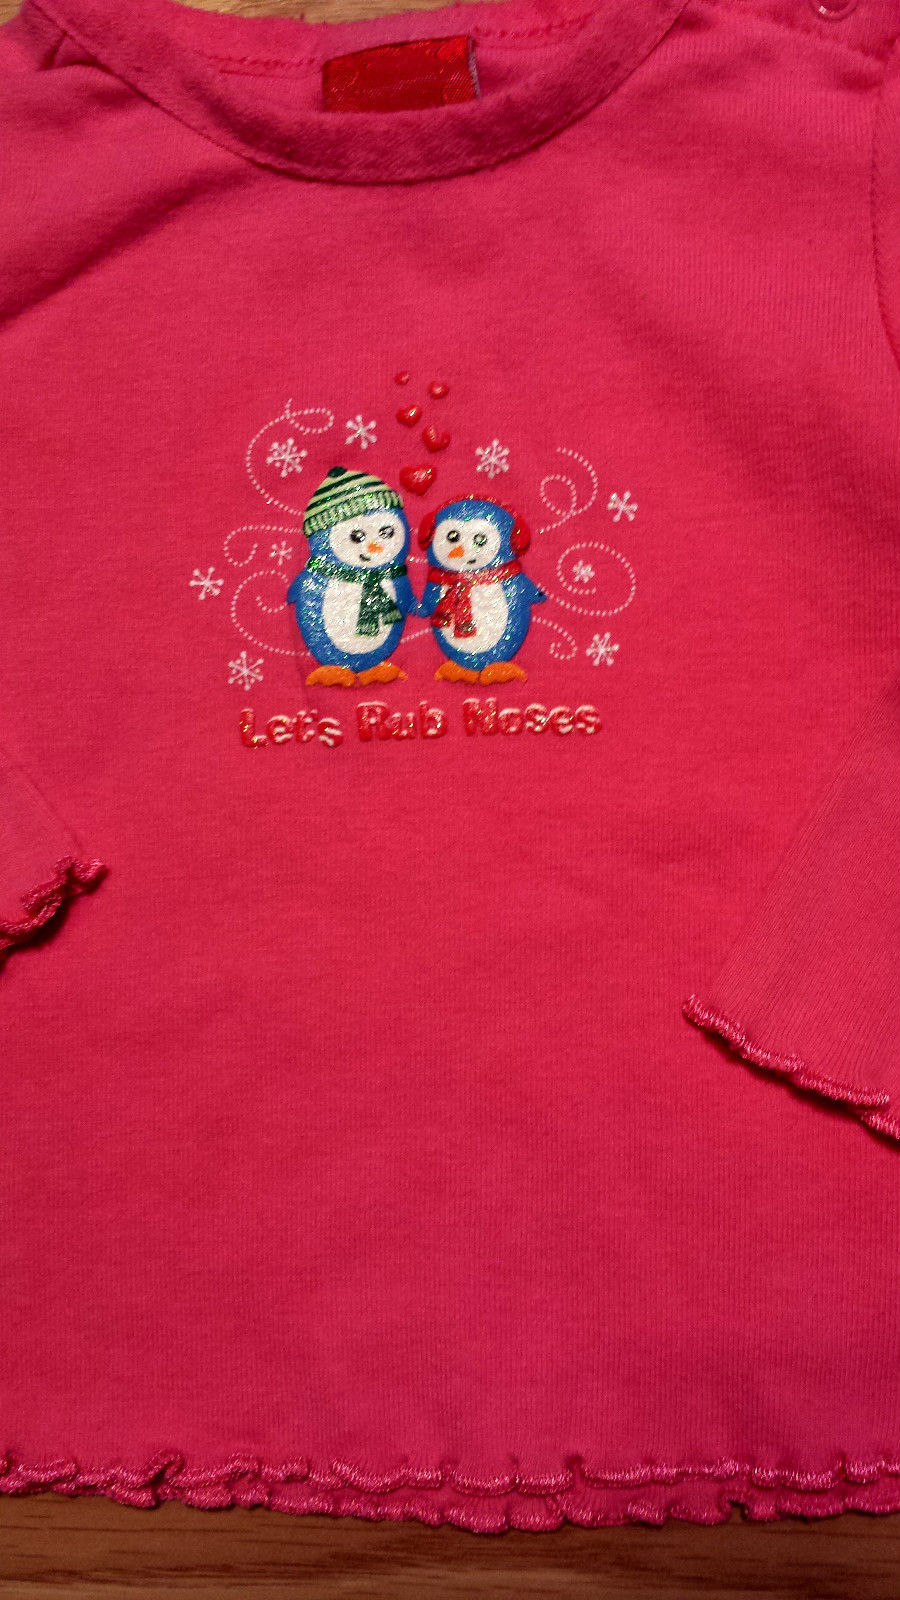 Girl's Size 6 M 3-6 Months 2P Pink Glitter Penguin Lets Rub Noses Top, TCP Jeans